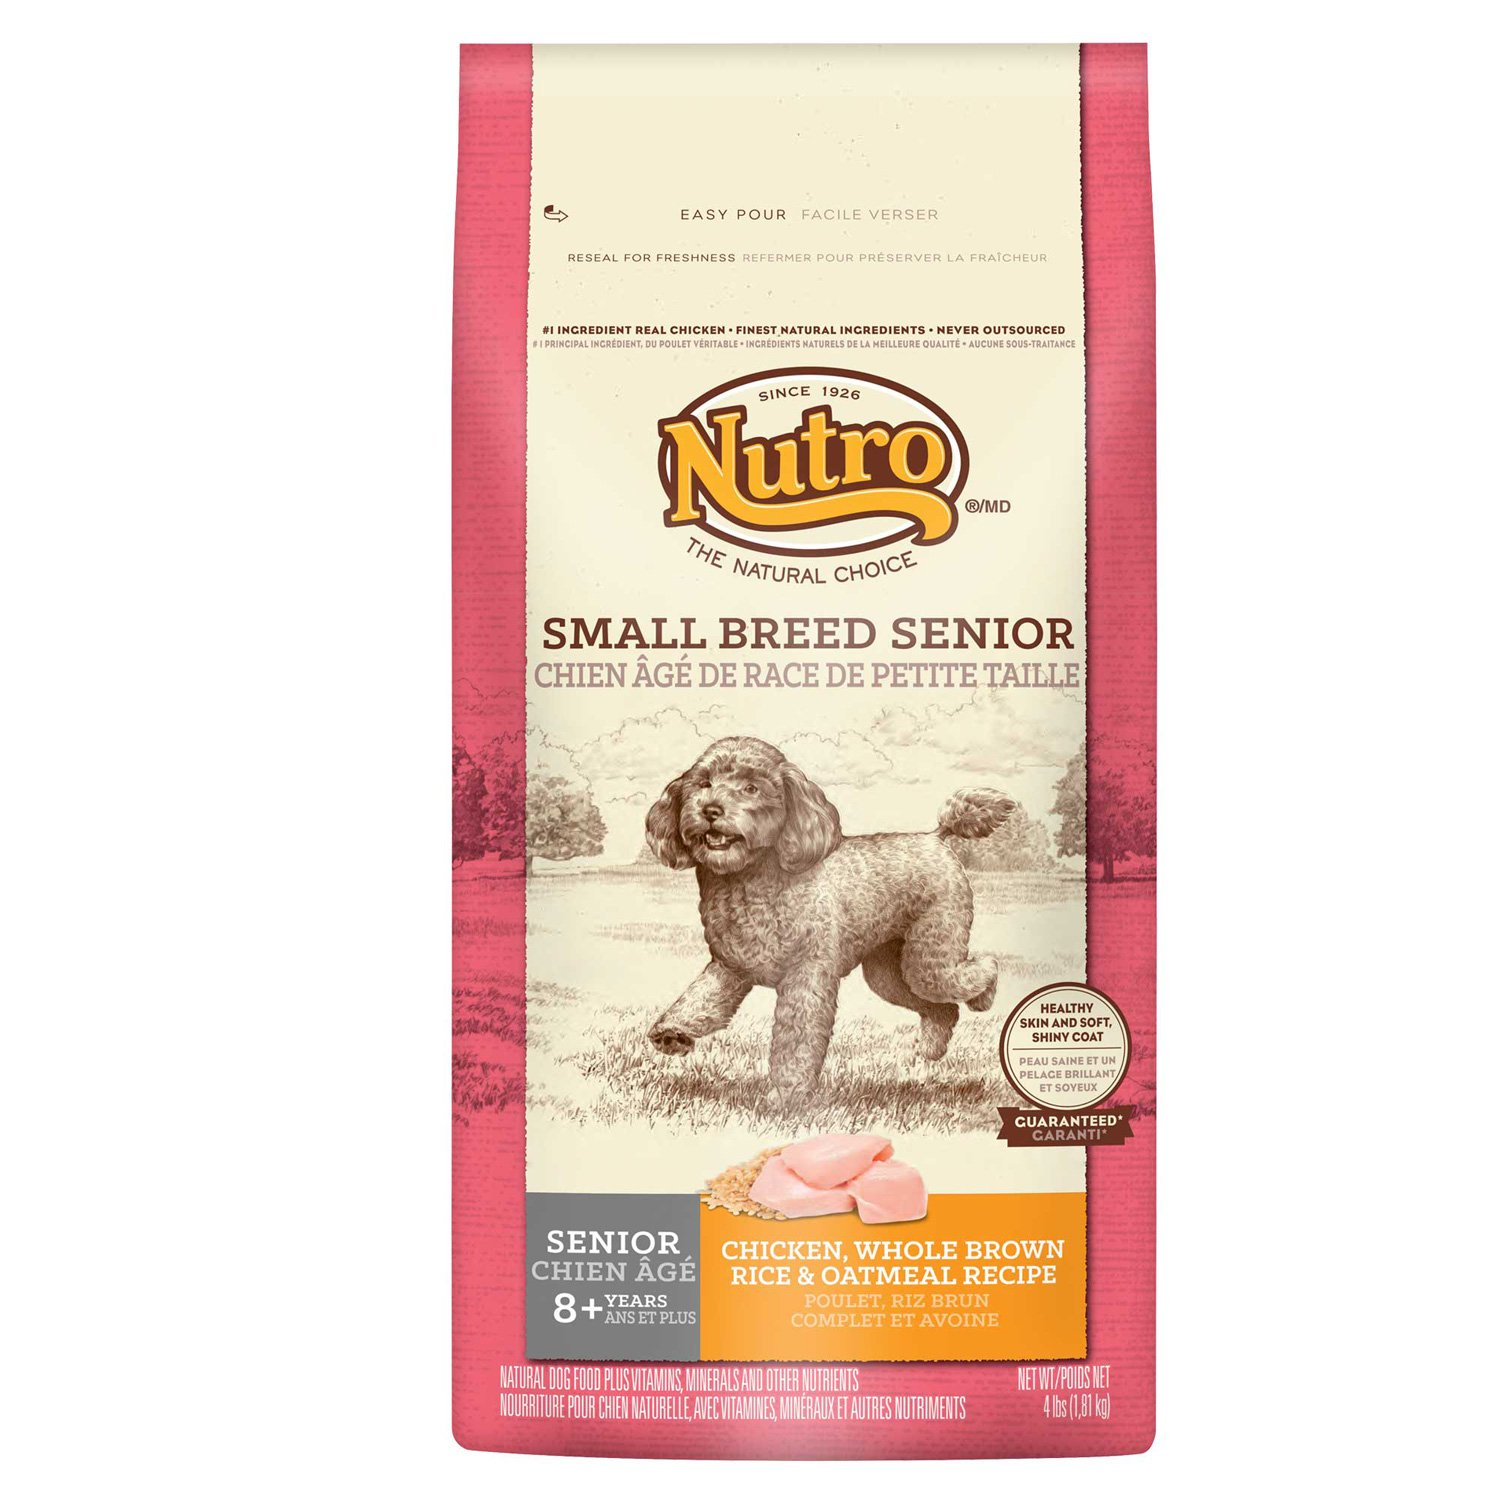 Nutro Chicken, Whole Brown Rice & Oatmeal Small Breed Senior Dog Food